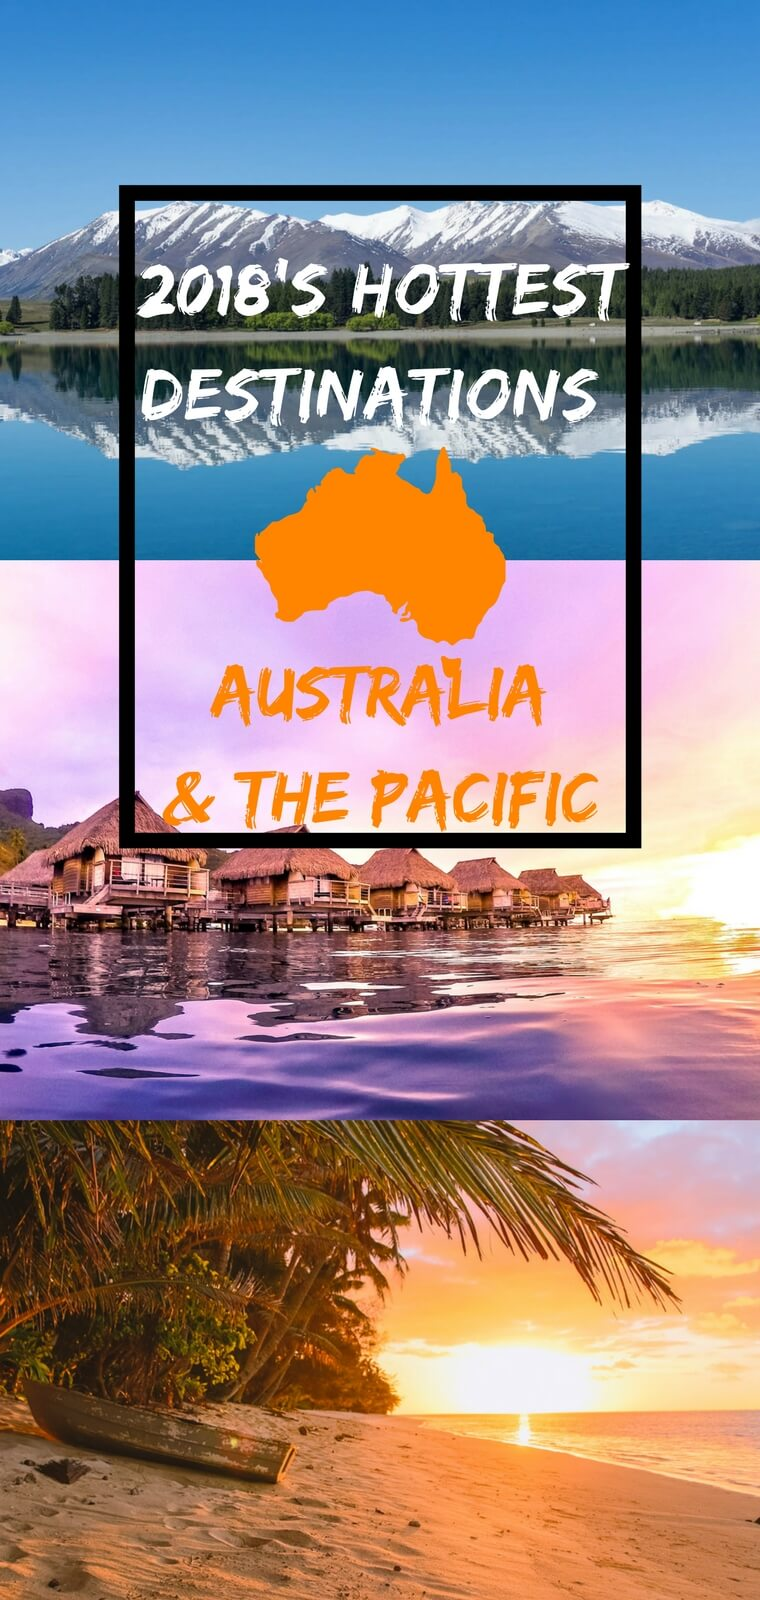 Travel bloggers identify 6 of the hottest and trendiest places to visit in Australia and the Pacific in 2018. From New Zealand to the Cook Islands, we have you covered with the coolest new places for your 2018 trip.